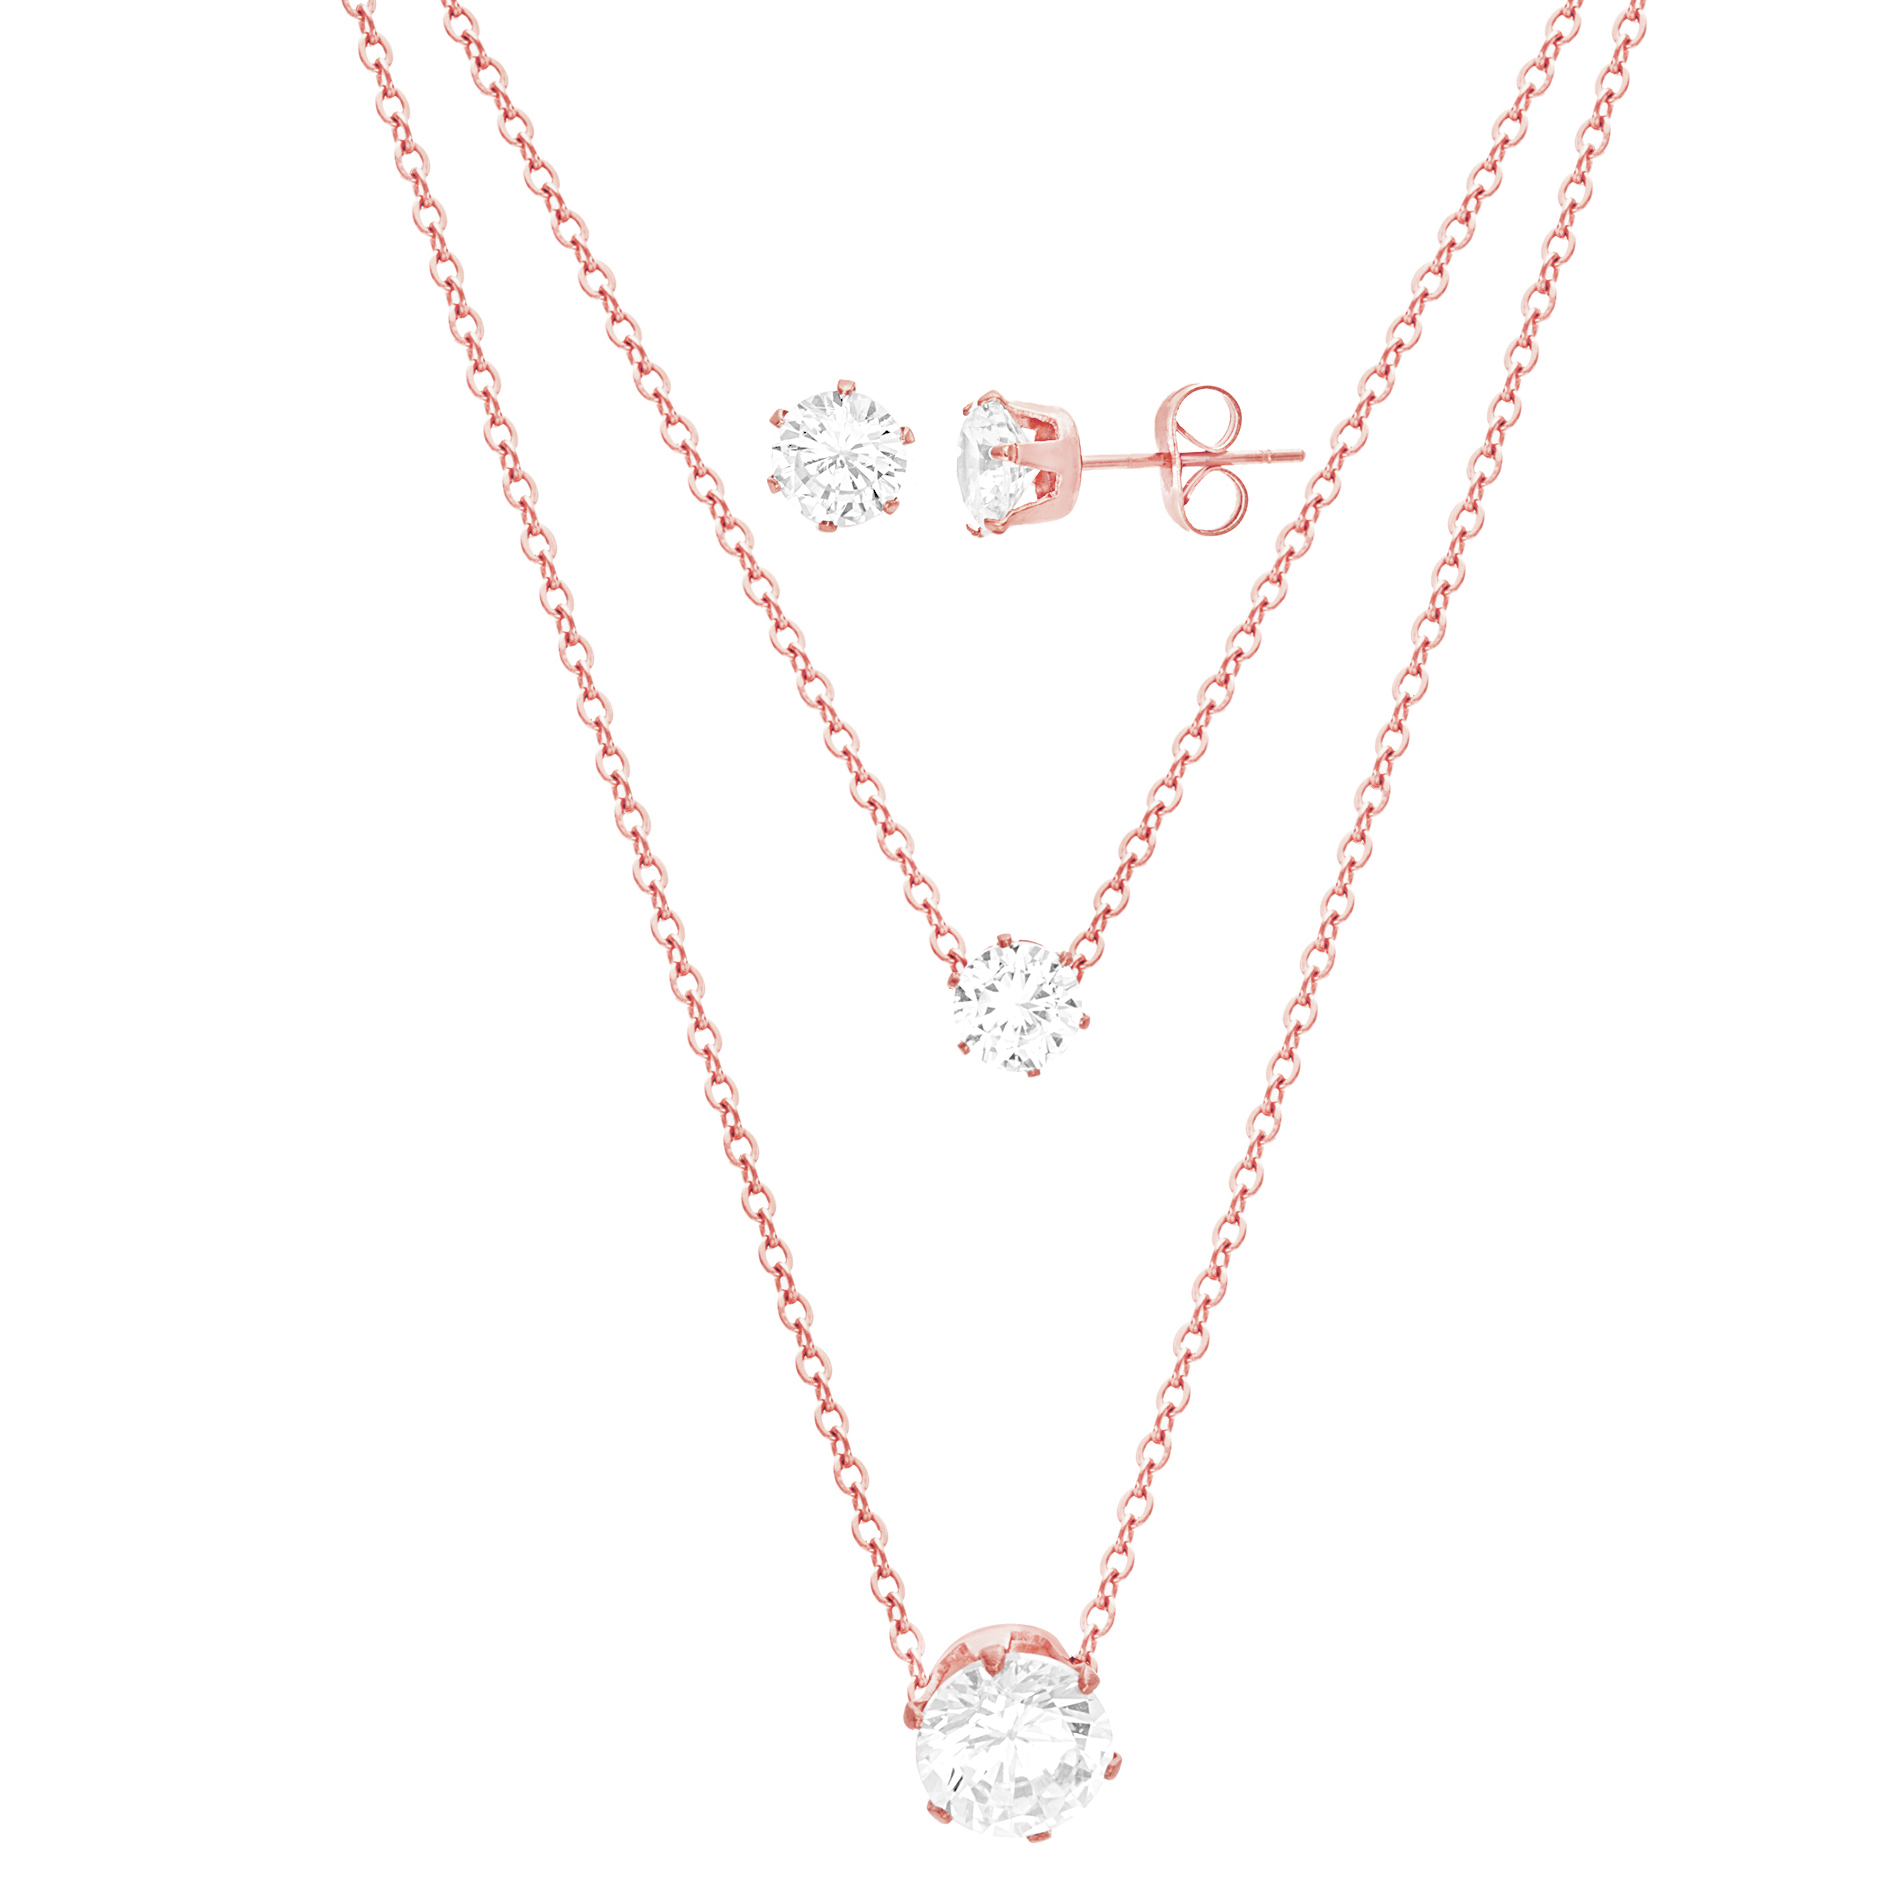 Rose-Tone Stainless Steel Two Strand Round Cubic Zirconia Station Necklace and Post Earrings Set